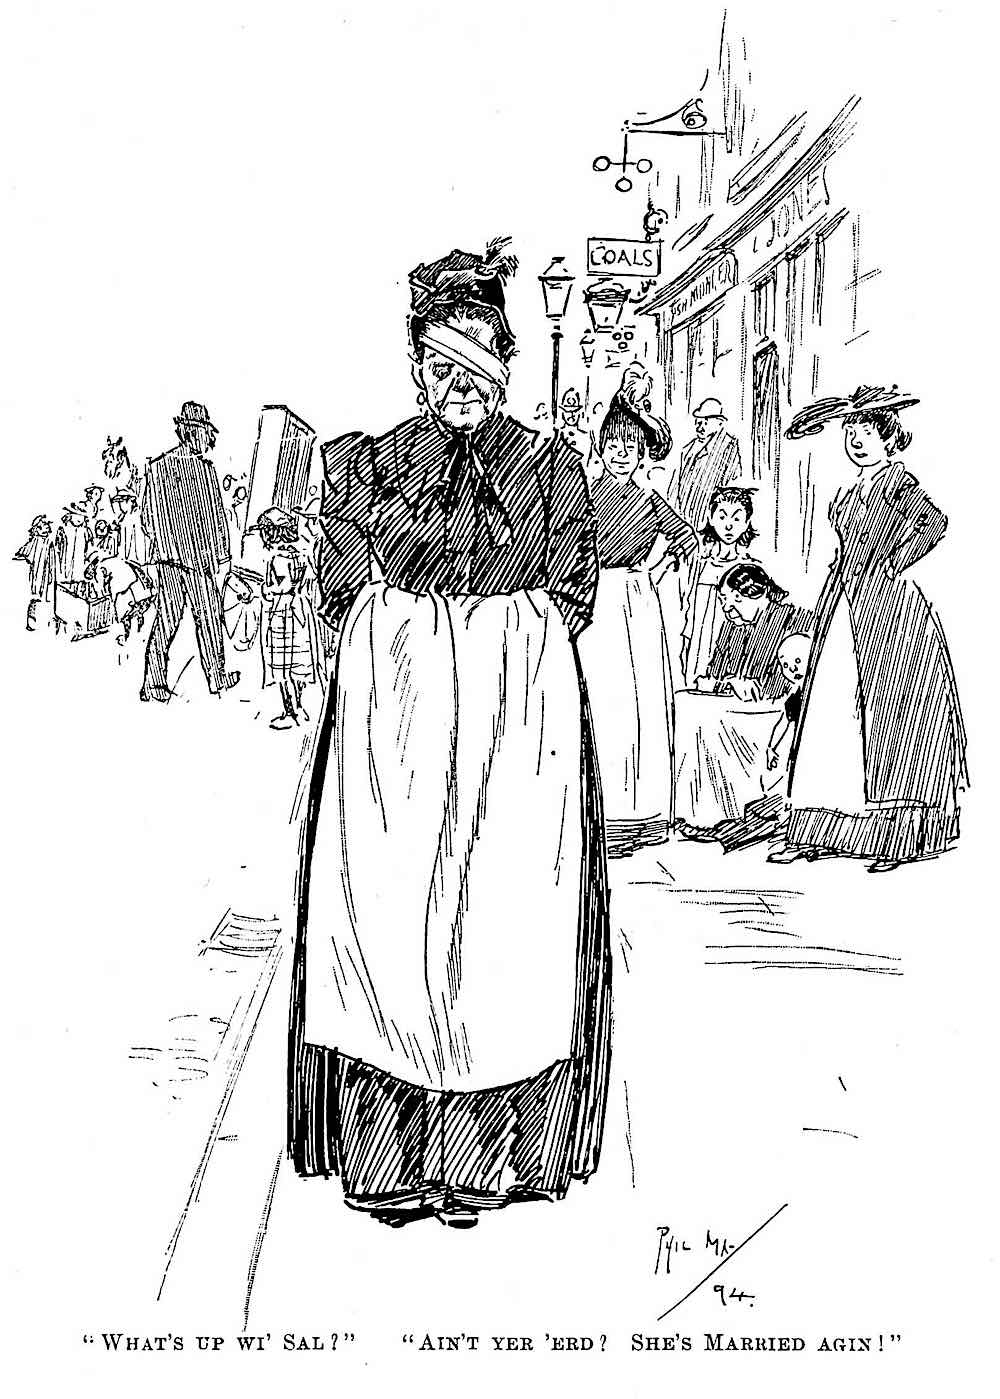 a Phil May drawing about wife beating in 1894